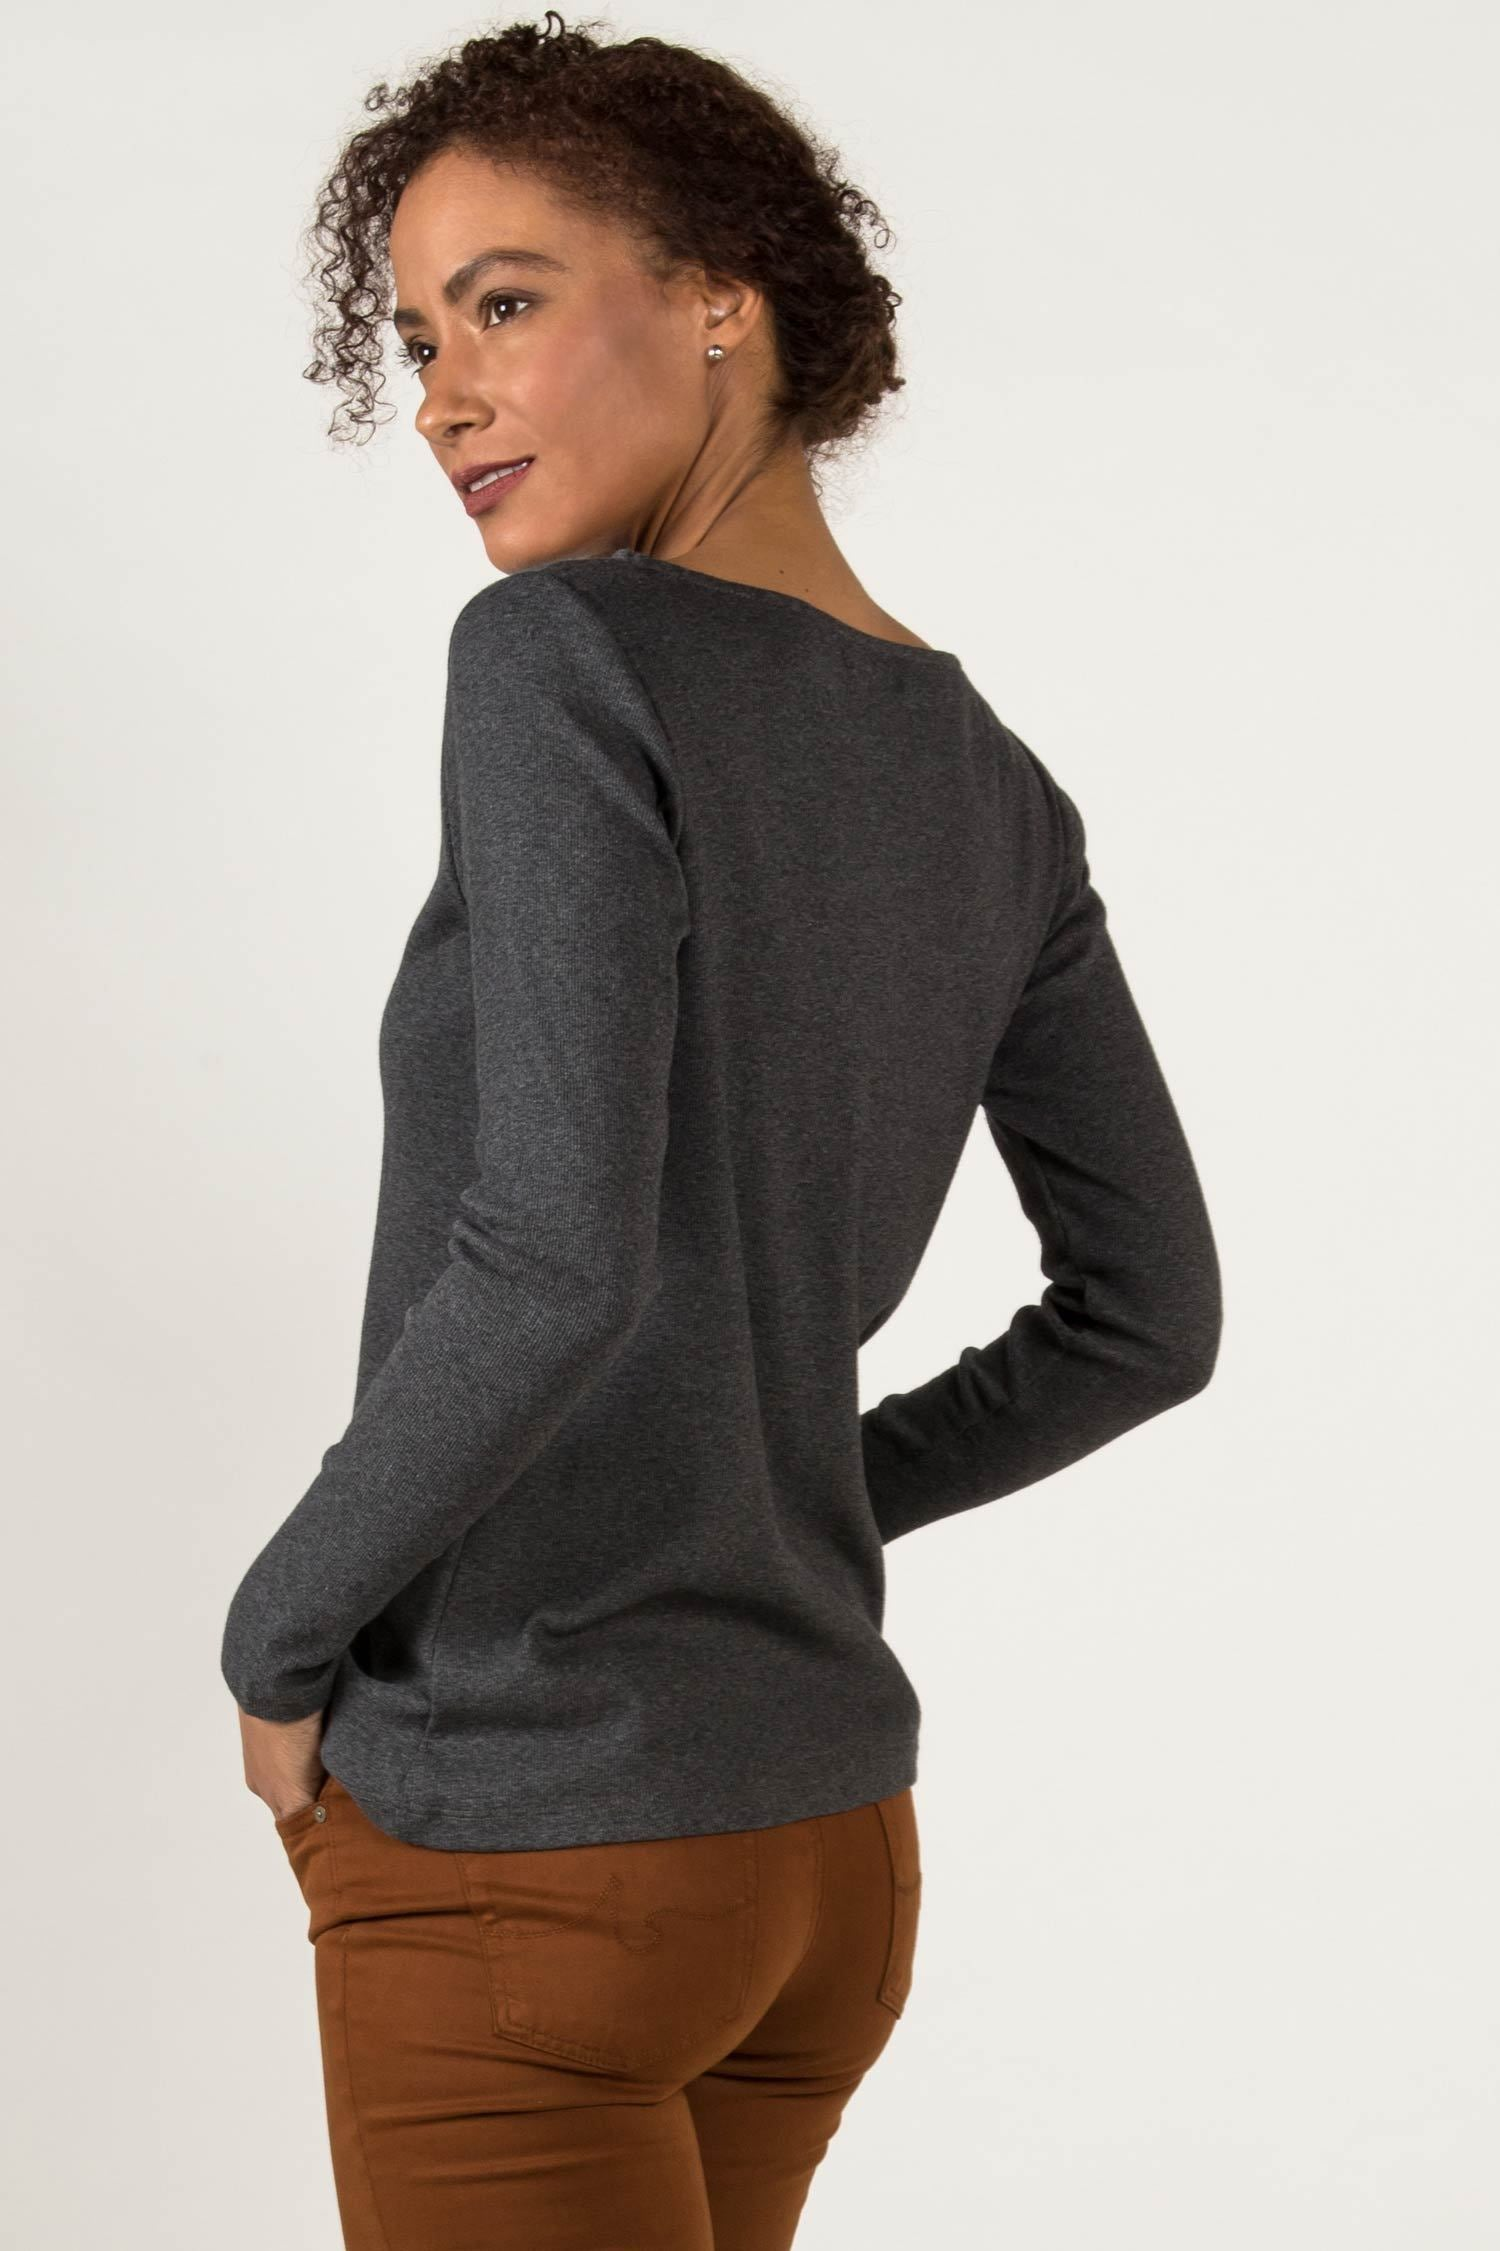 Womens Organic Cotton Top | Gray Long Sleeve Boatneck Tee | Indigenous